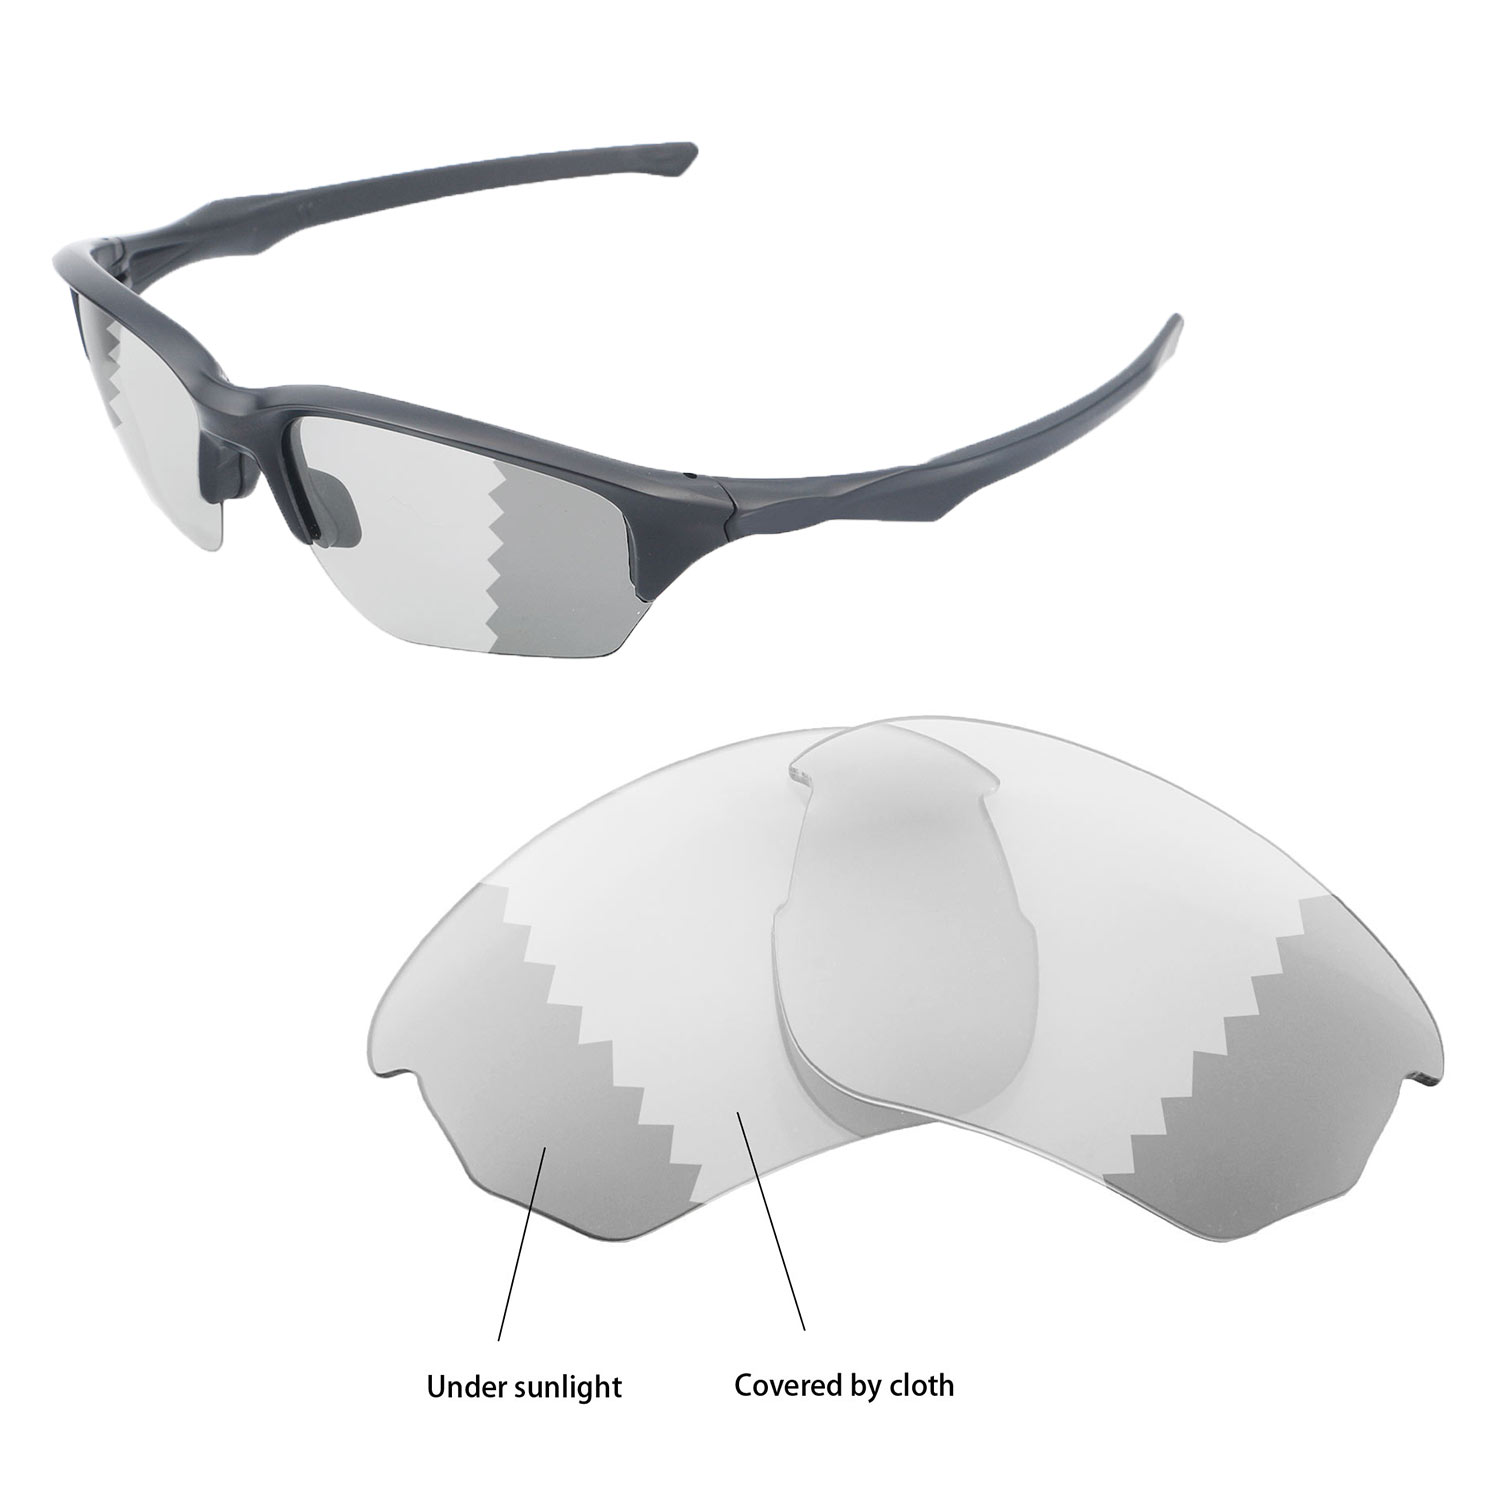 70f6d76812 Details about Walleva Polarized Transition/Photochromic Lenses For Oakley  Flak Beta Sunglasses